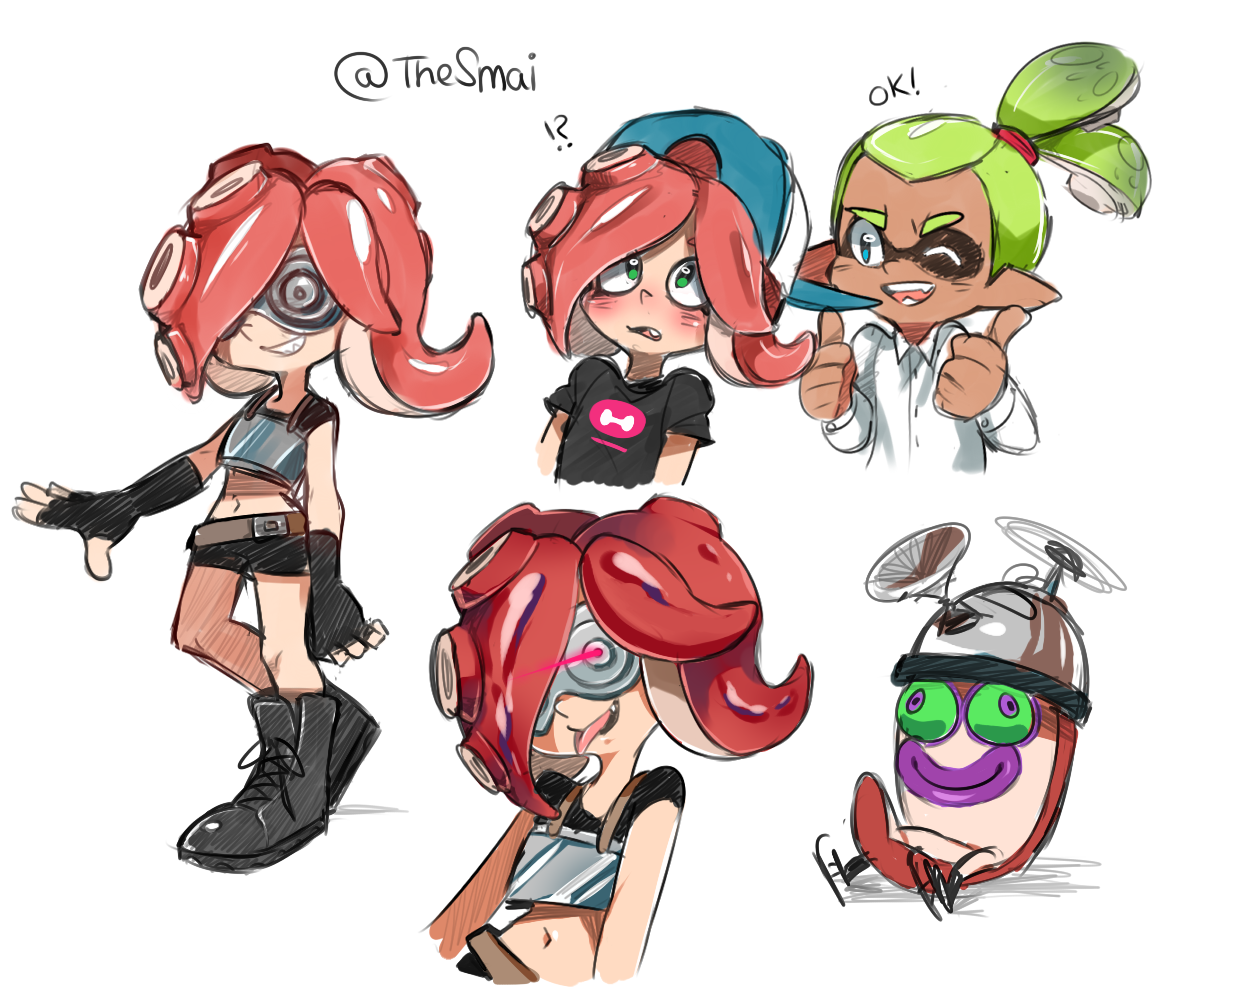 octolings - Google Search